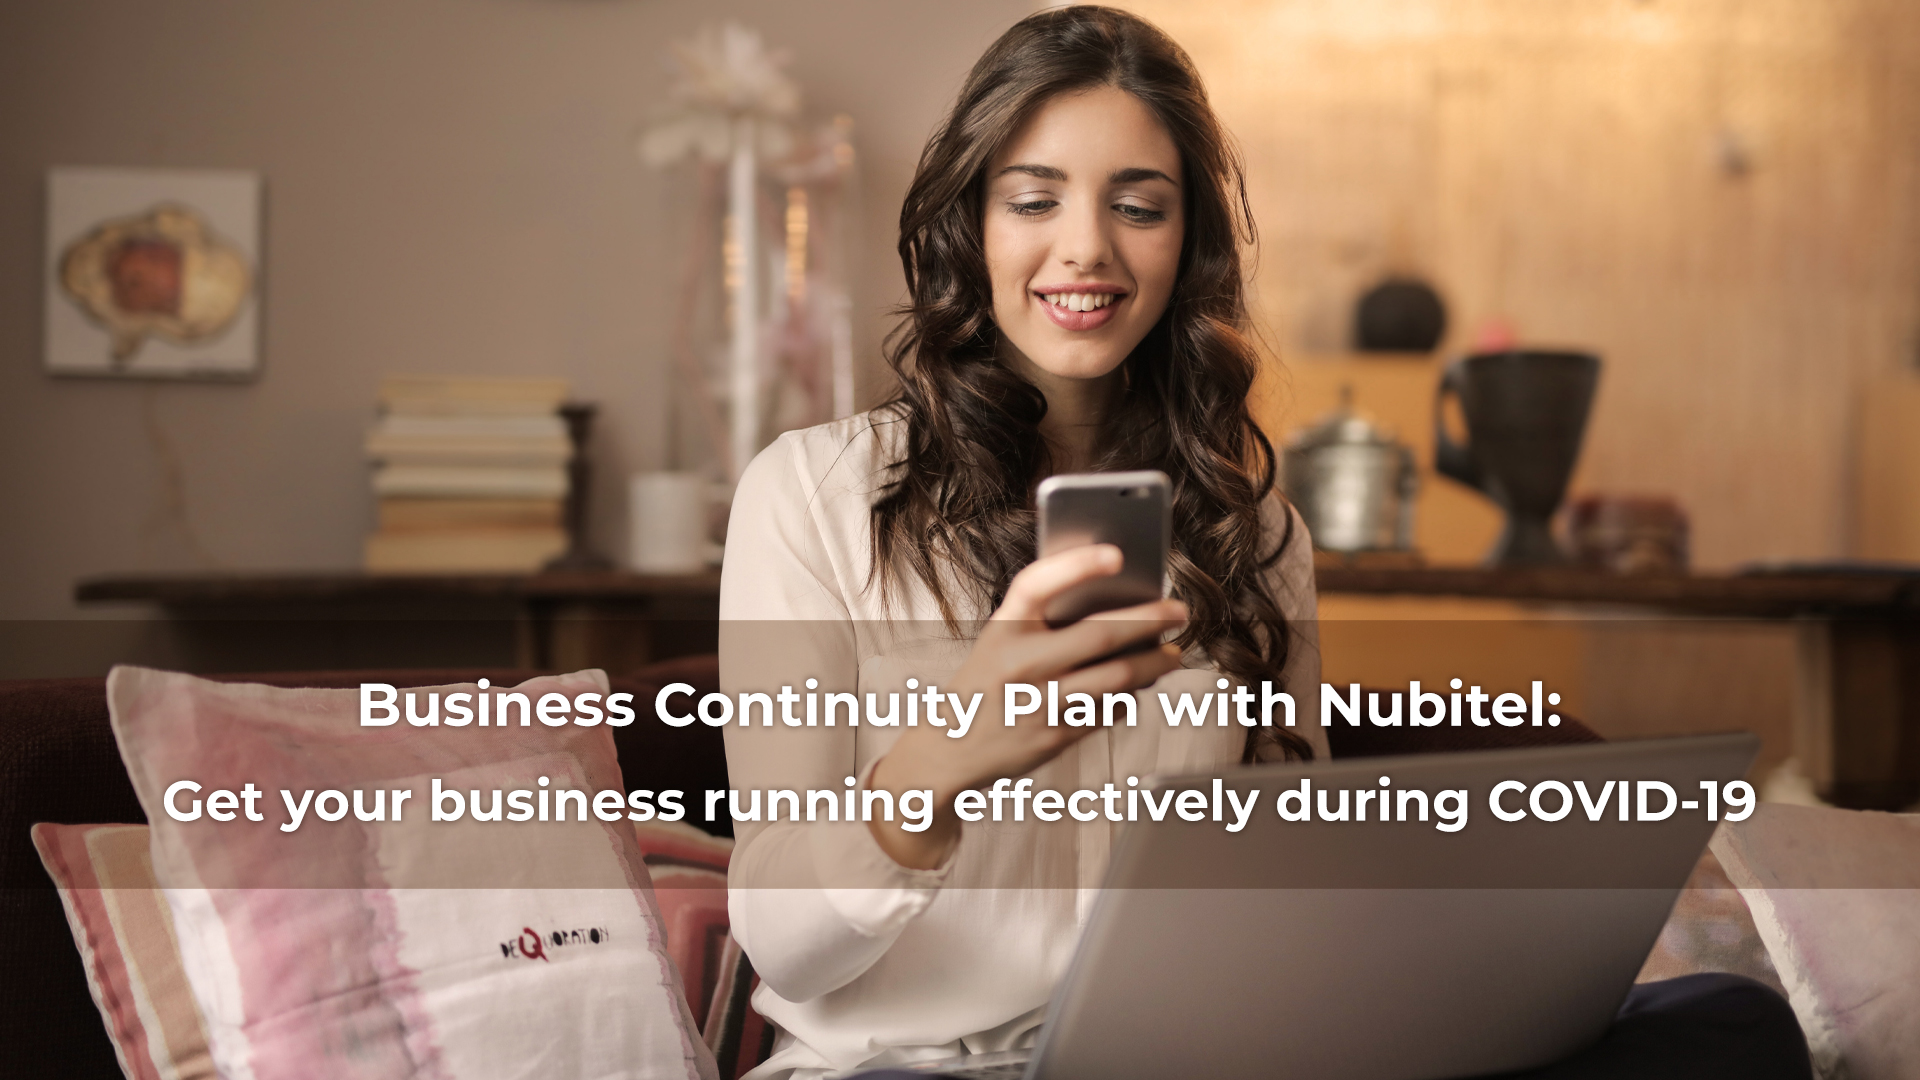 develop-business-continuity-plan-with-nubitel-get-your-business-running-effectively-during-covid-19